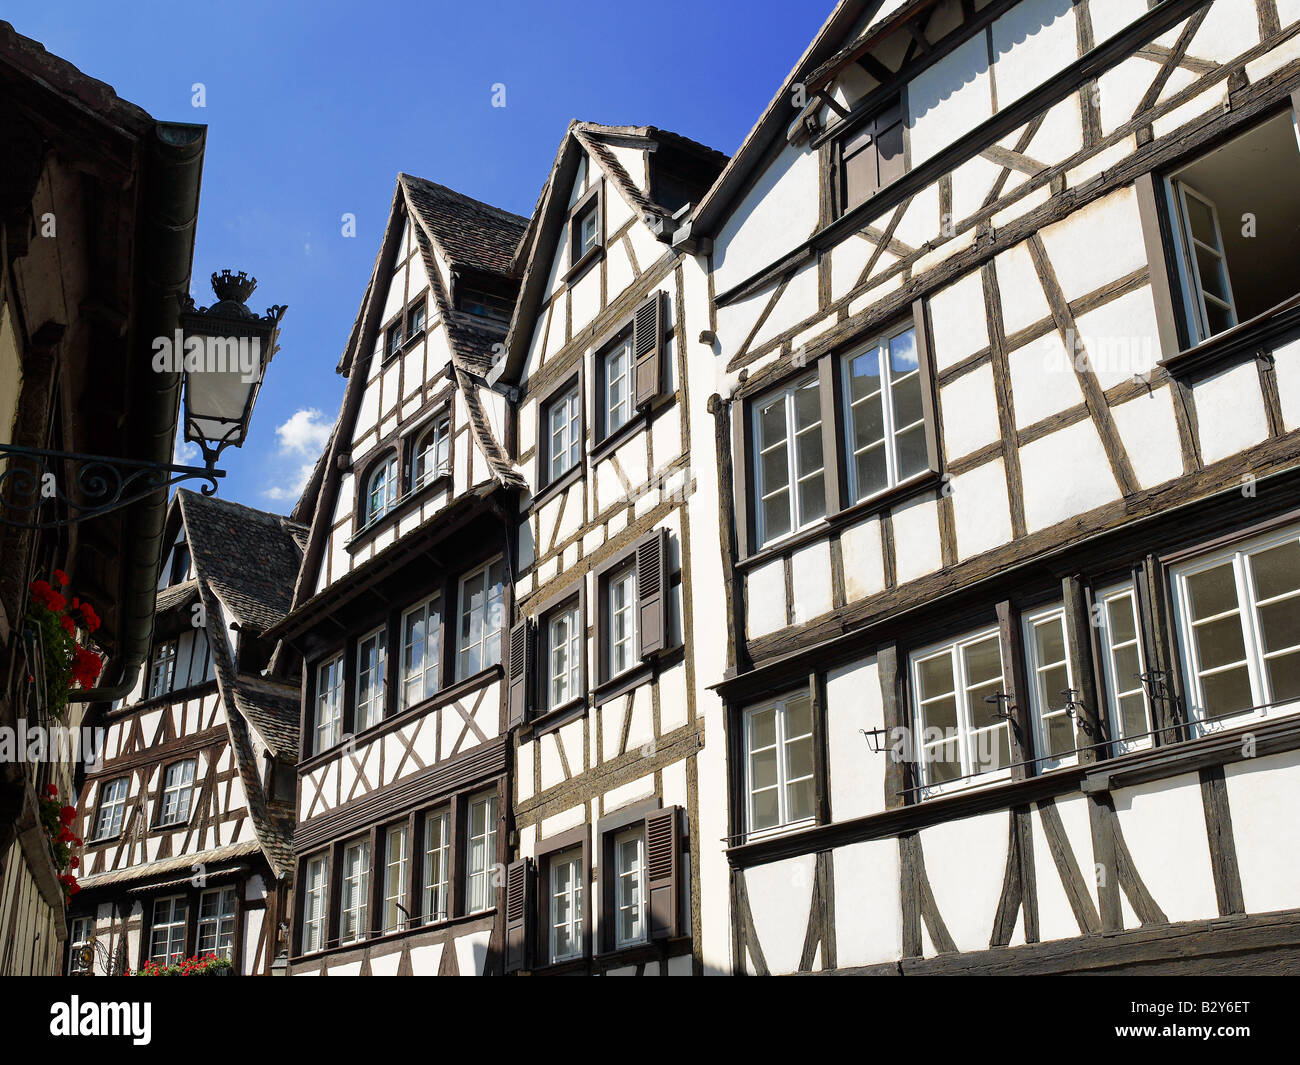 16th Century French Home - renaissance-half-timbered-houses-16th-century-la-petite-france-district-B2Y6ET_Beautiful 16th Century French Home - renaissance-half-timbered-houses-16th-century-la-petite-france-district-B2Y6ET  Graphic_109950.jpg